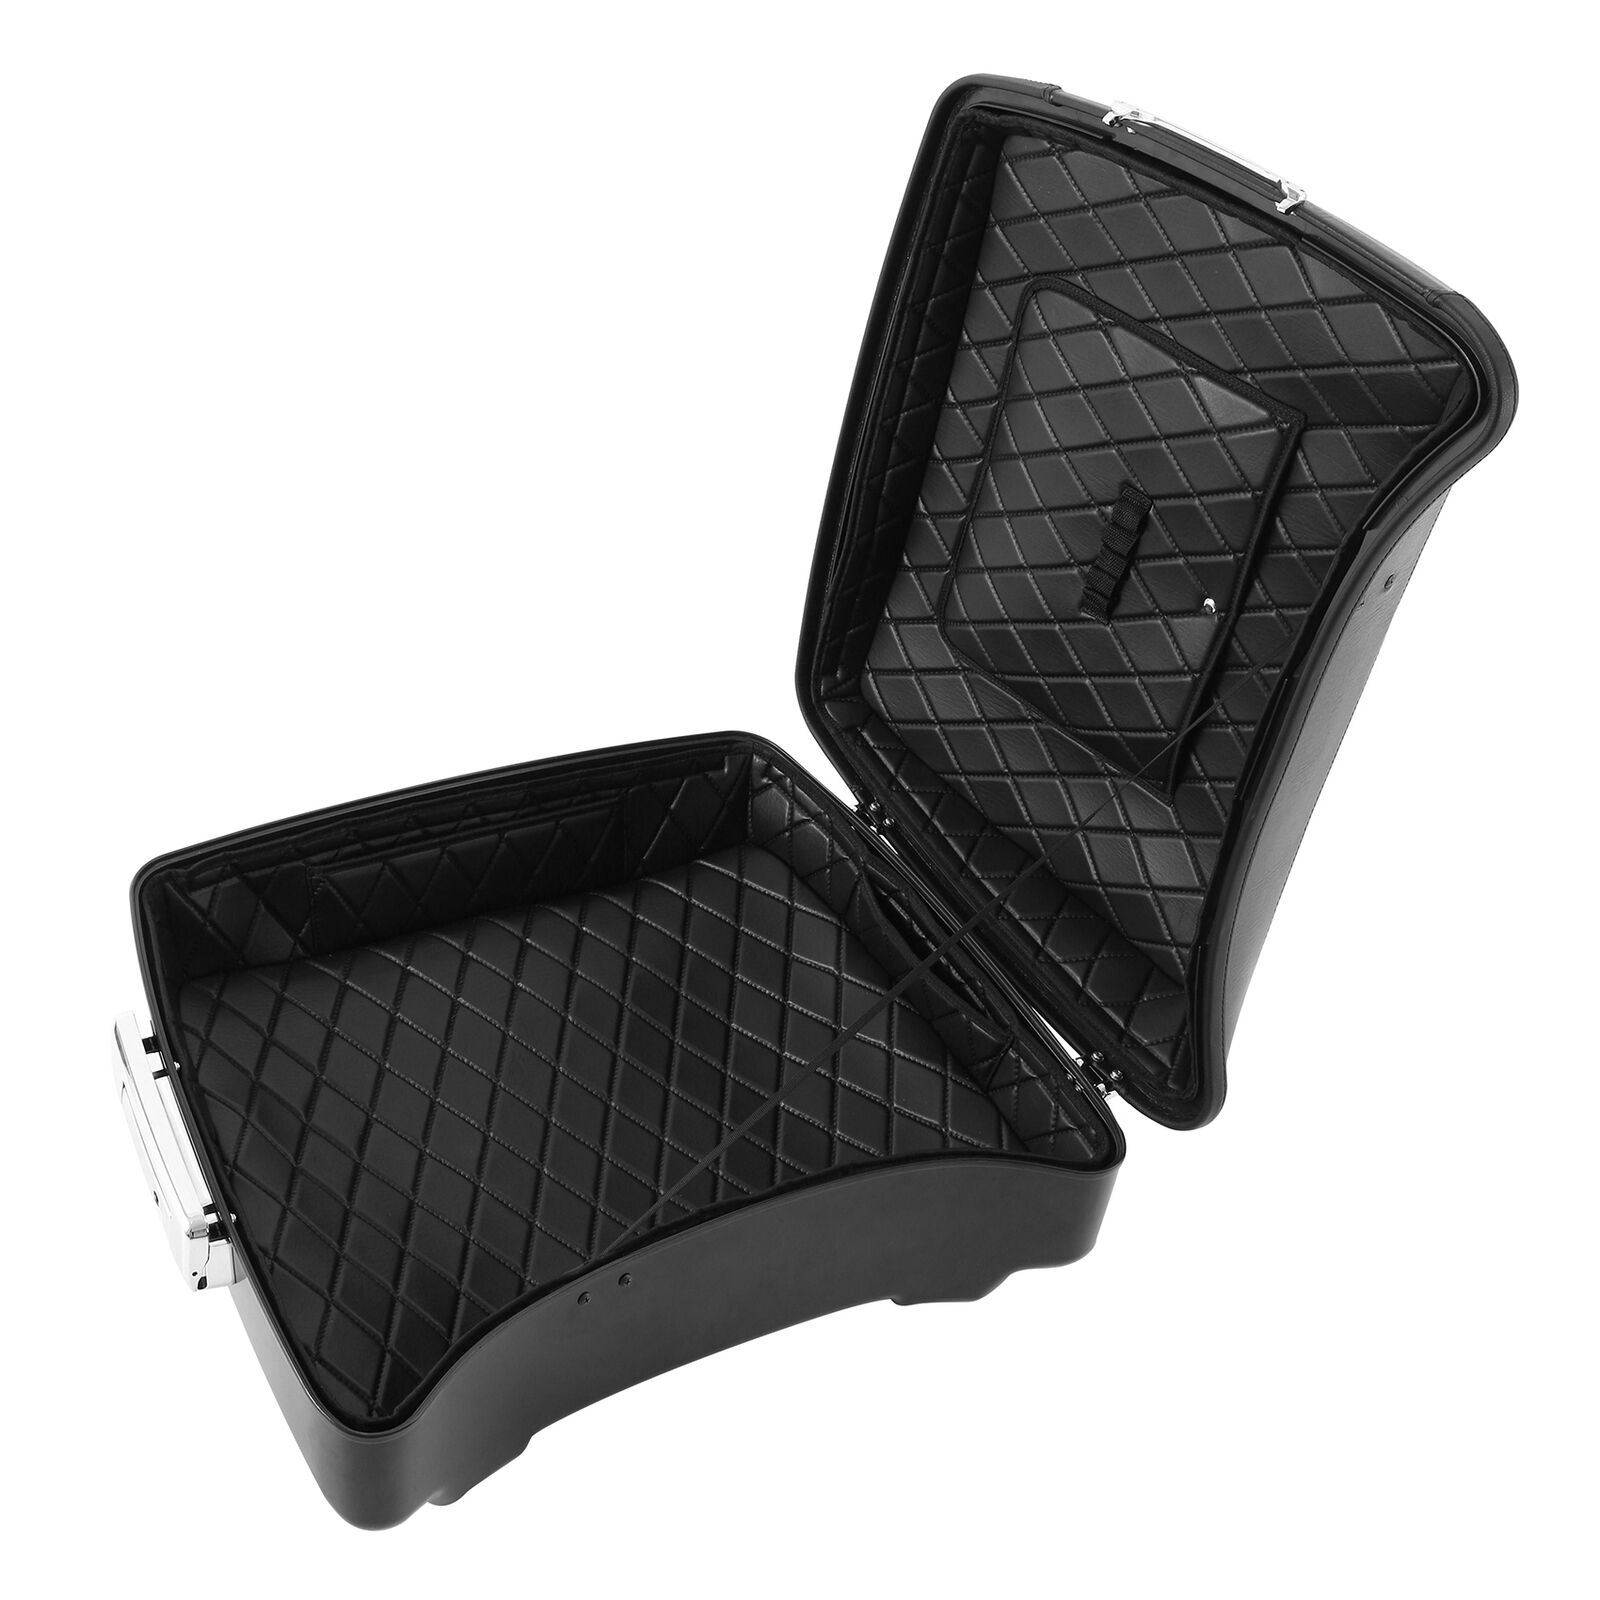 Motorcycle Chopped Pack Trunk Carpet Liner For Harley Touring Street Glide Road King 2014-2020 2019